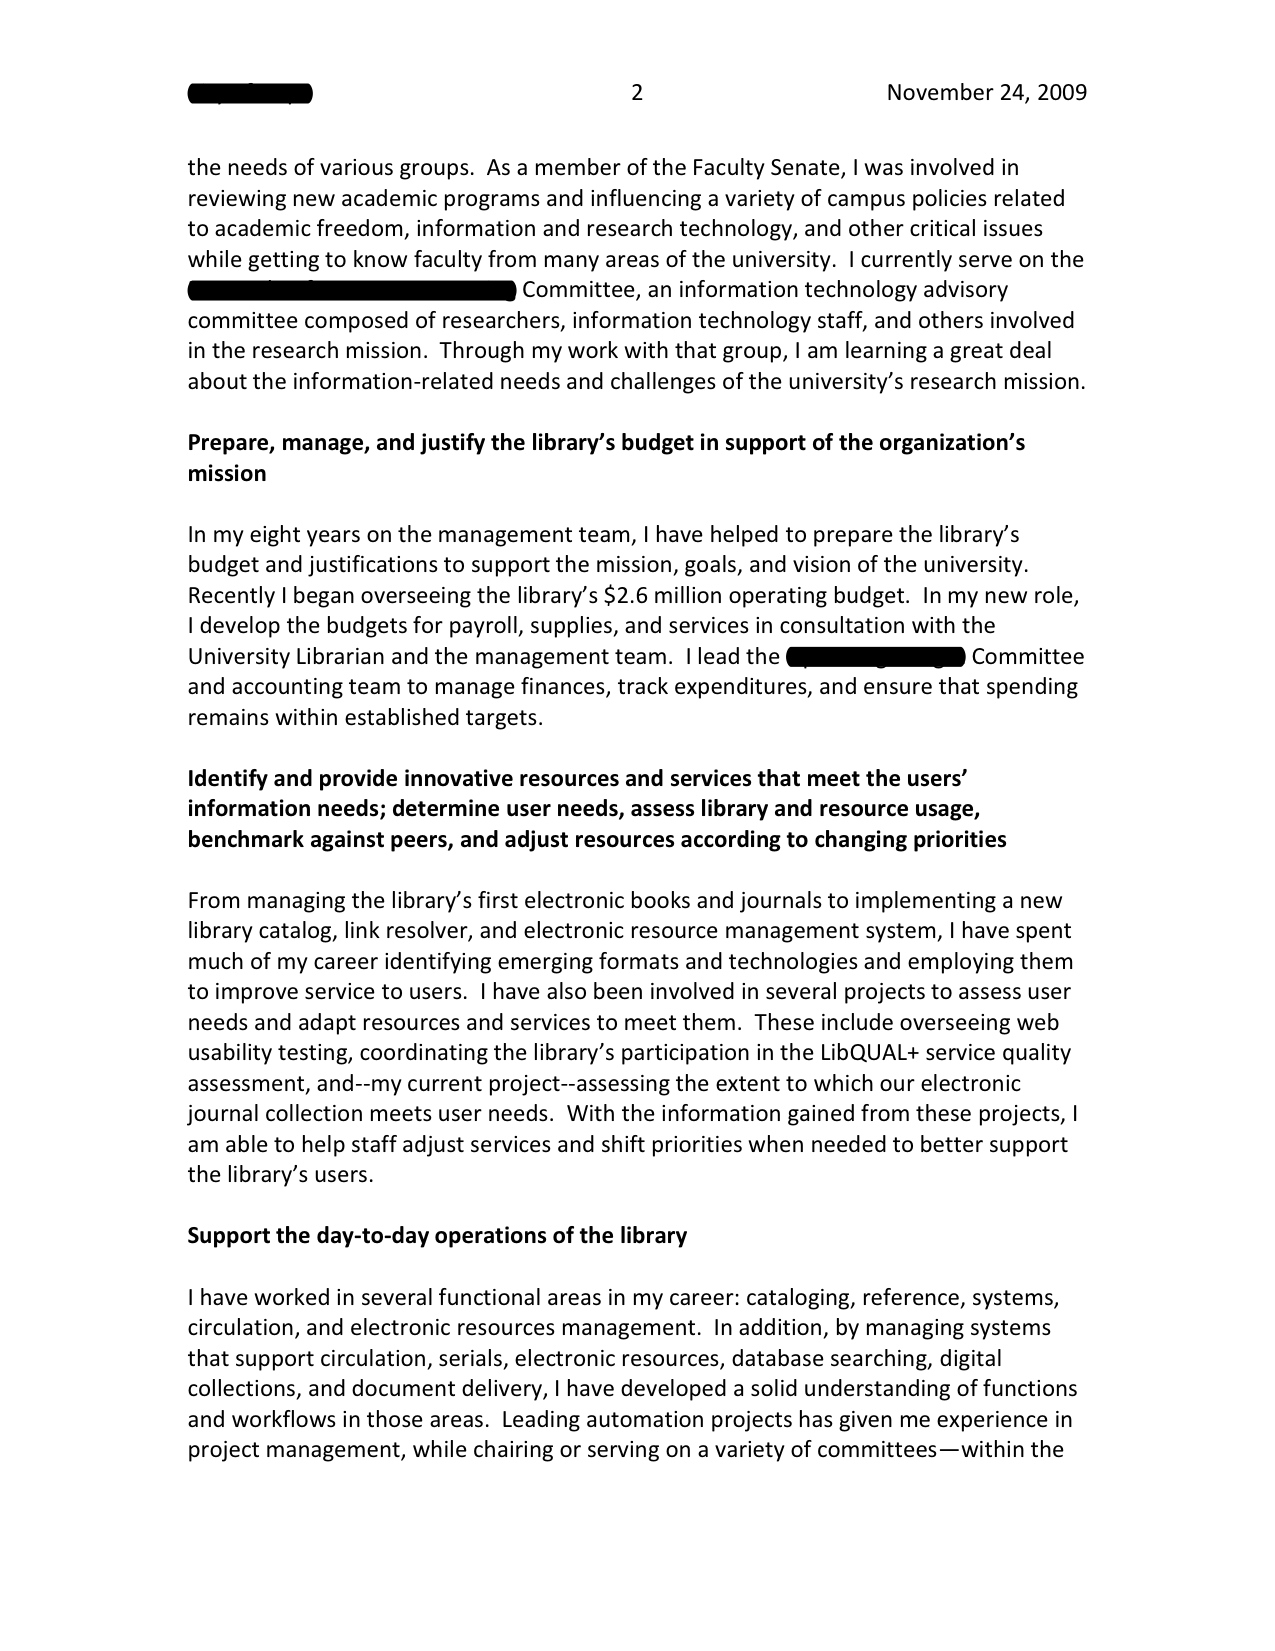 Sample Cover Letter Hbs